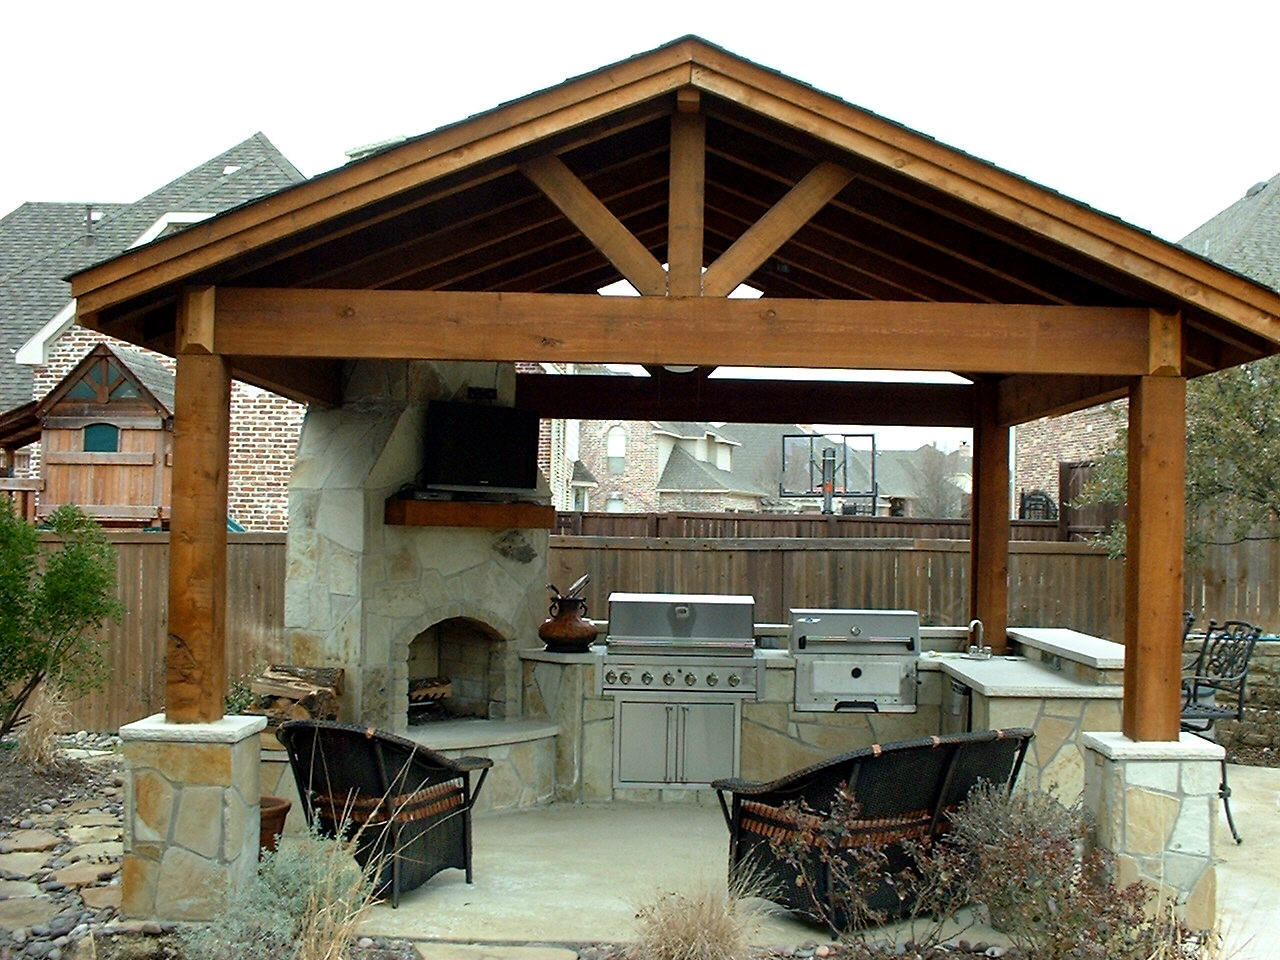 patio cover plans designs. Patio Cover Plans Designs A Effteco Regarding  Dimensions 1280 X 960 Patio Cover Plans Designs